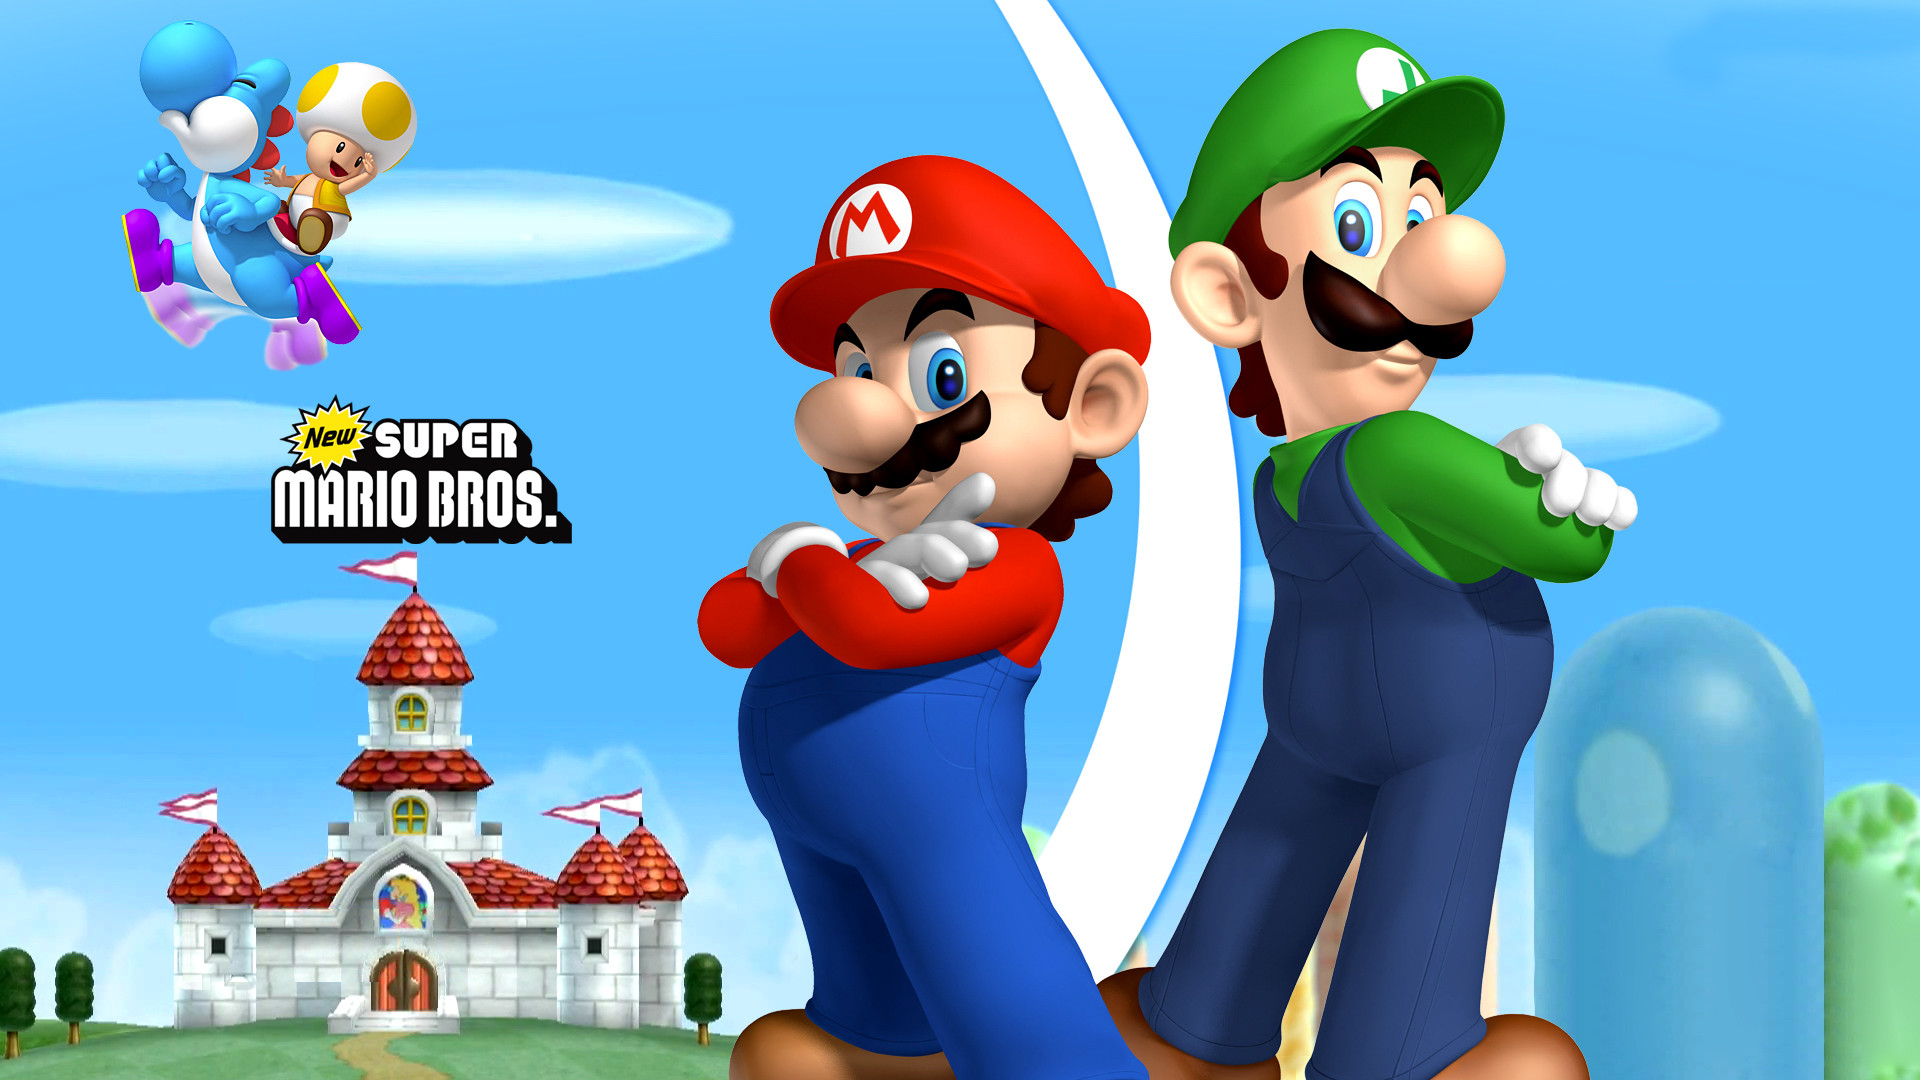 1920x1080 Super Mario Bros HD desktop wallpaper : Fullscreen : Dual Monitor 1280×1024 Mario  Bros